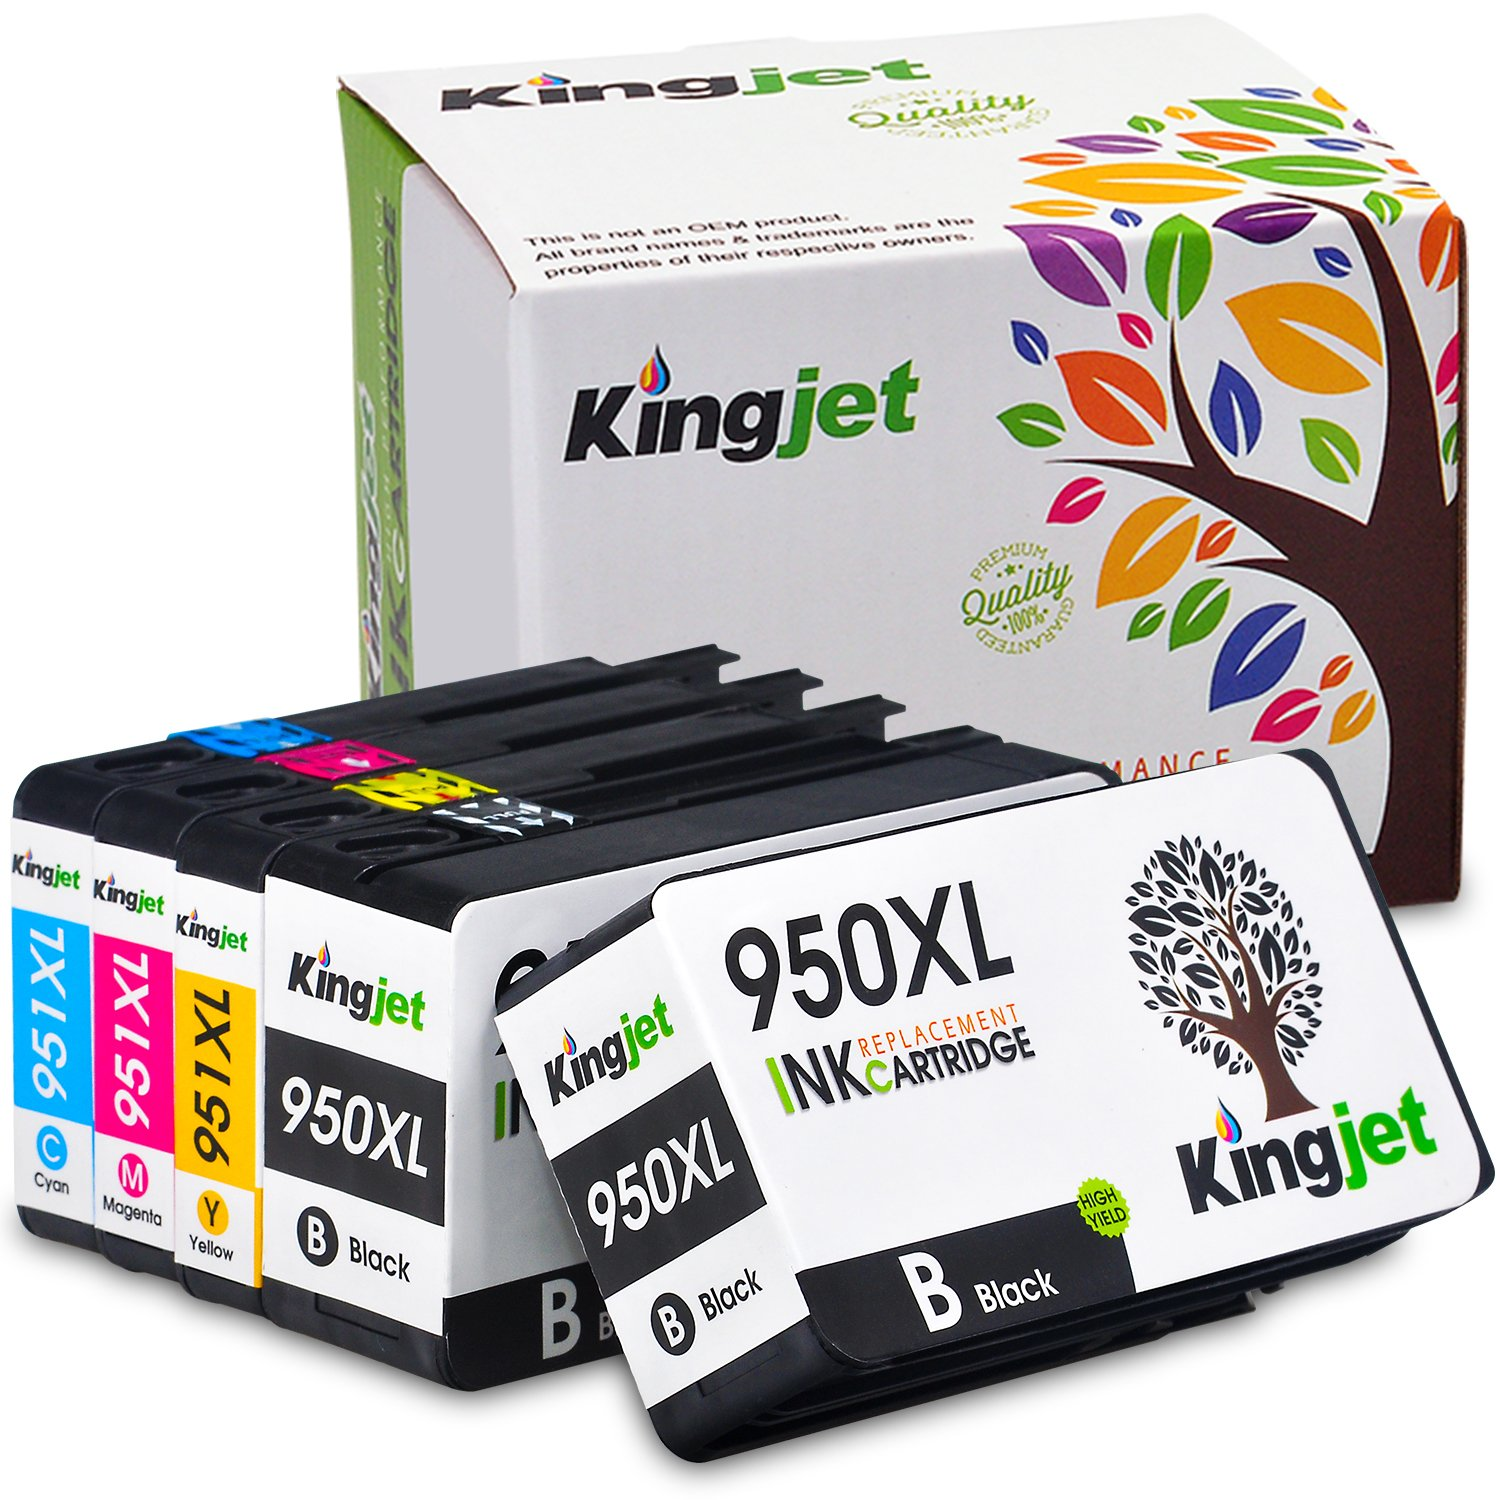 Kingjet Compatible Ink Cartridge Replacement for 950XL 951XL Work with Officejet Pro 8100 8600 8610 8615 8620 8625 8630 Printers, (1Set+1BK) with Updated Chips by Kingjet (Image #1)